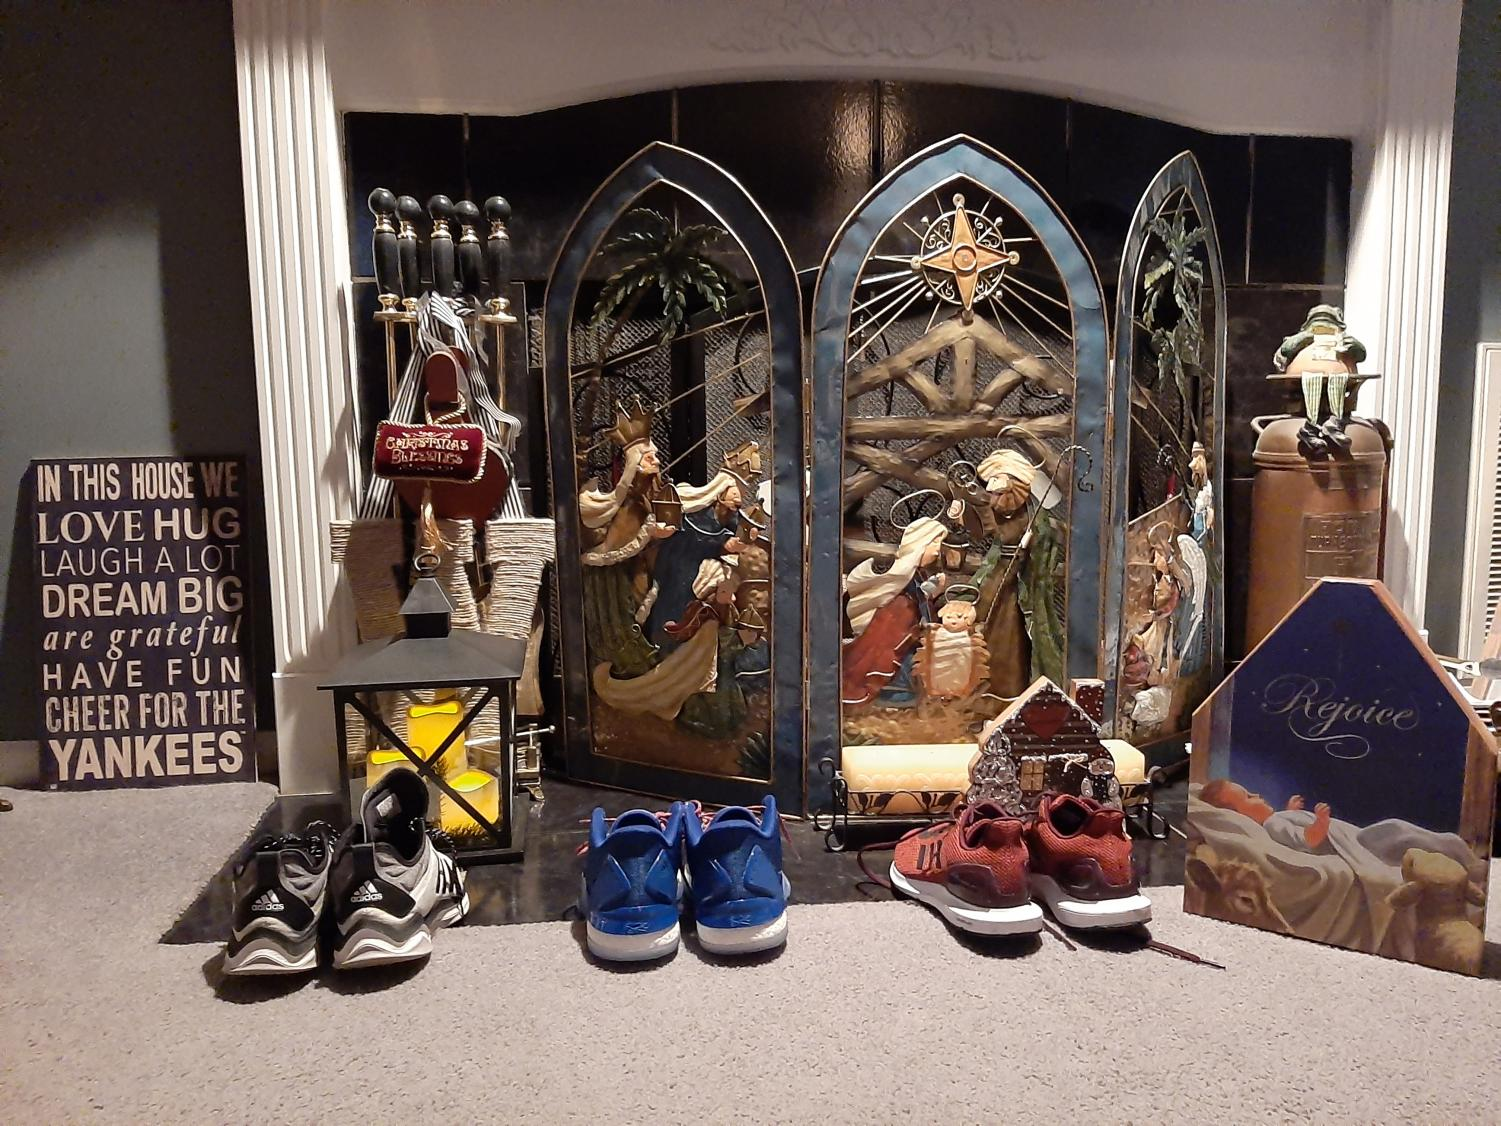 WAITING FOR ST. NICK:Traditionally, children will leave a pair of shoes by the fireplace for St. Nicholas to fill with gifts and crafts. Being close to the celebration of Christmas, this holiday's gifts are often similar to stocking stuffers, with the addition of St. Nicholas related candy.